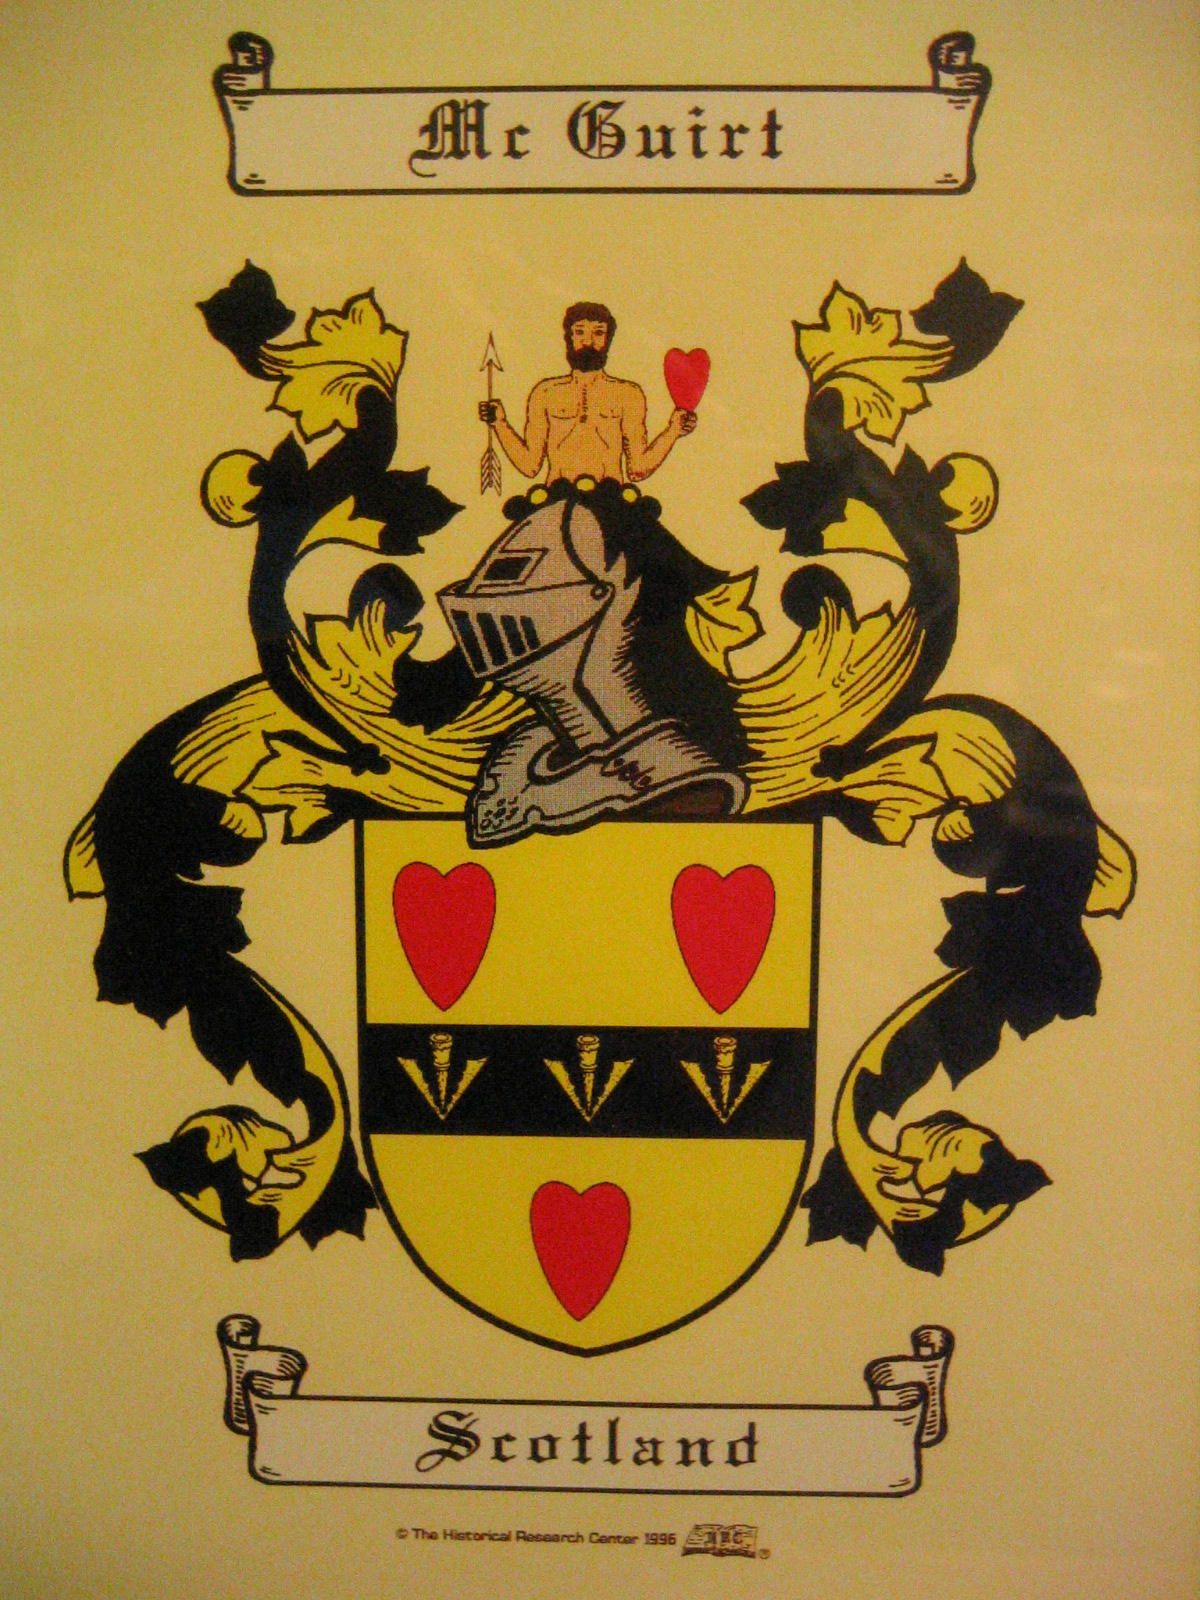 McGuirt Coat of Arms